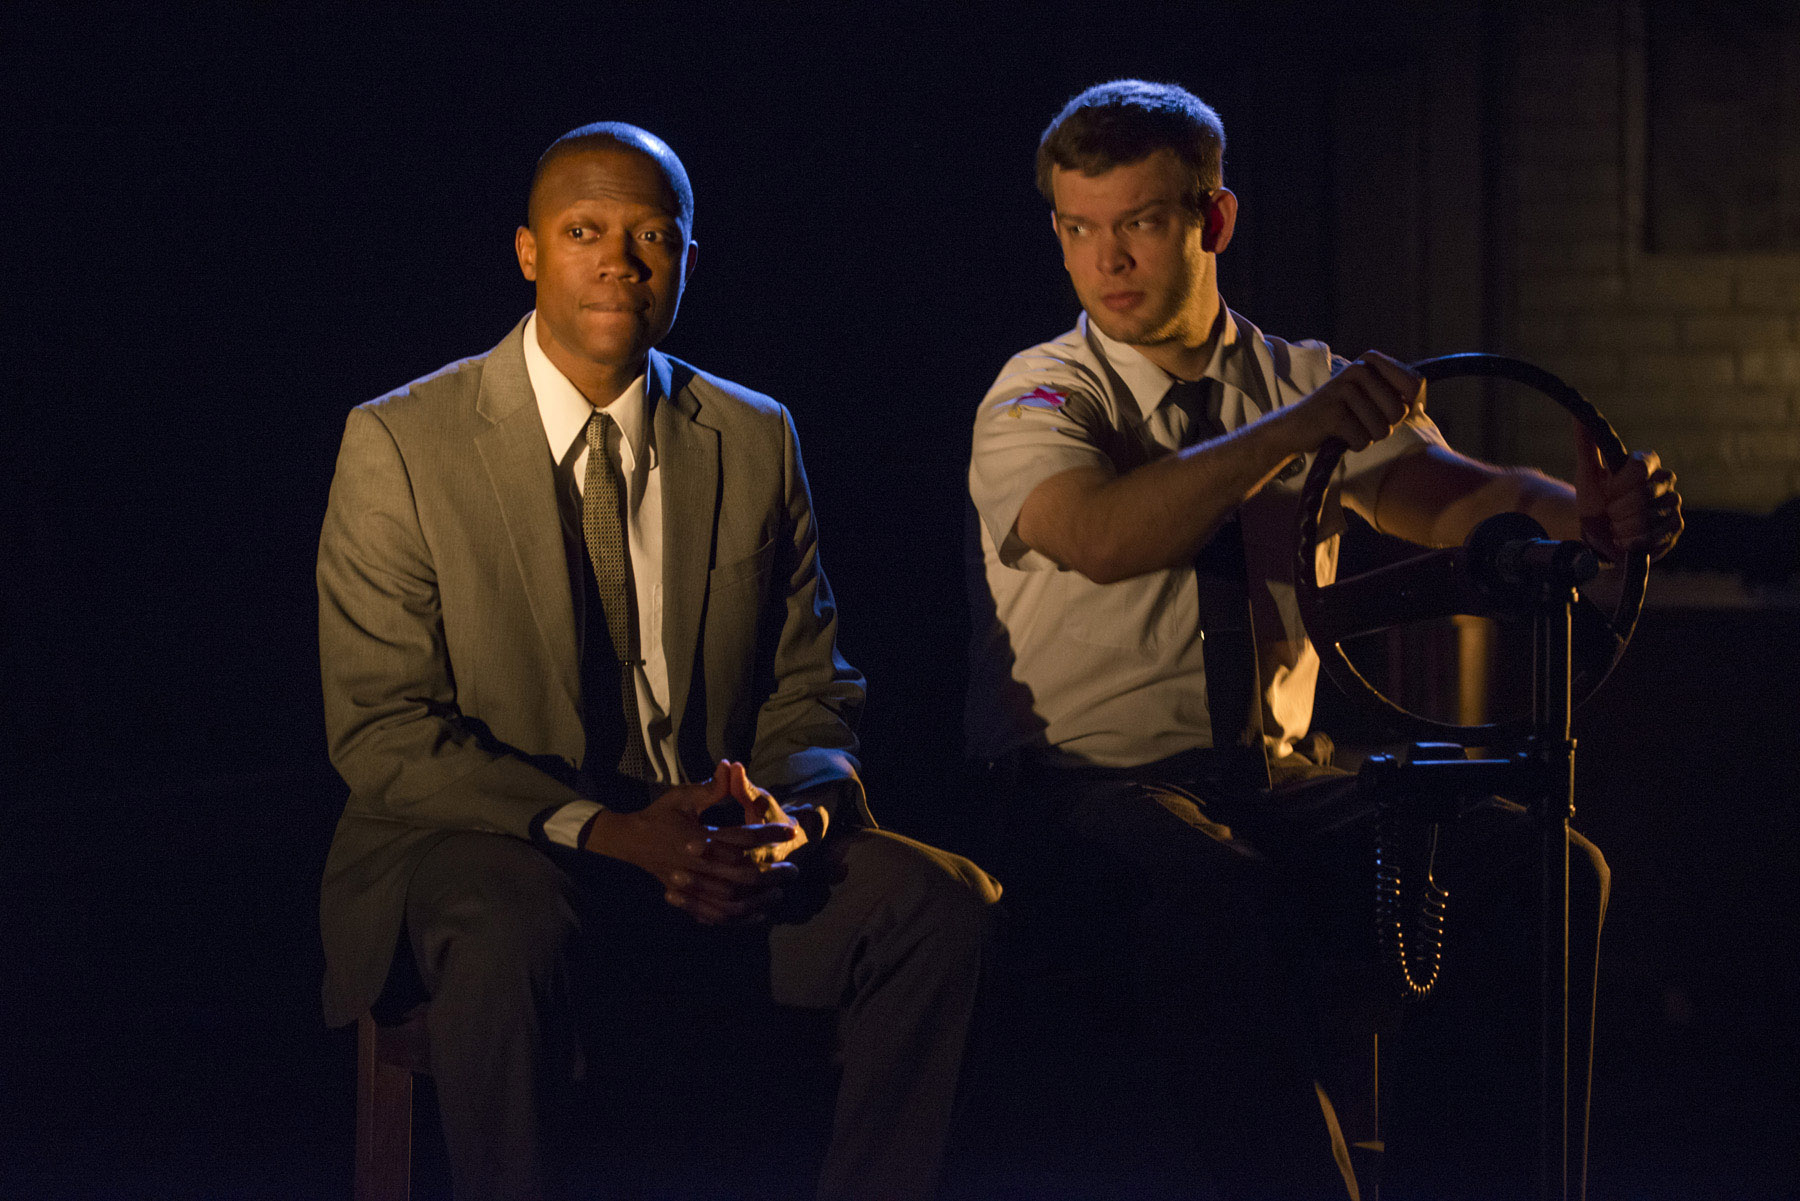 theater review in the heat of the night shattered globe theatre  manny buckley and drew schad in shattered globe theatre s production of in the heat of the